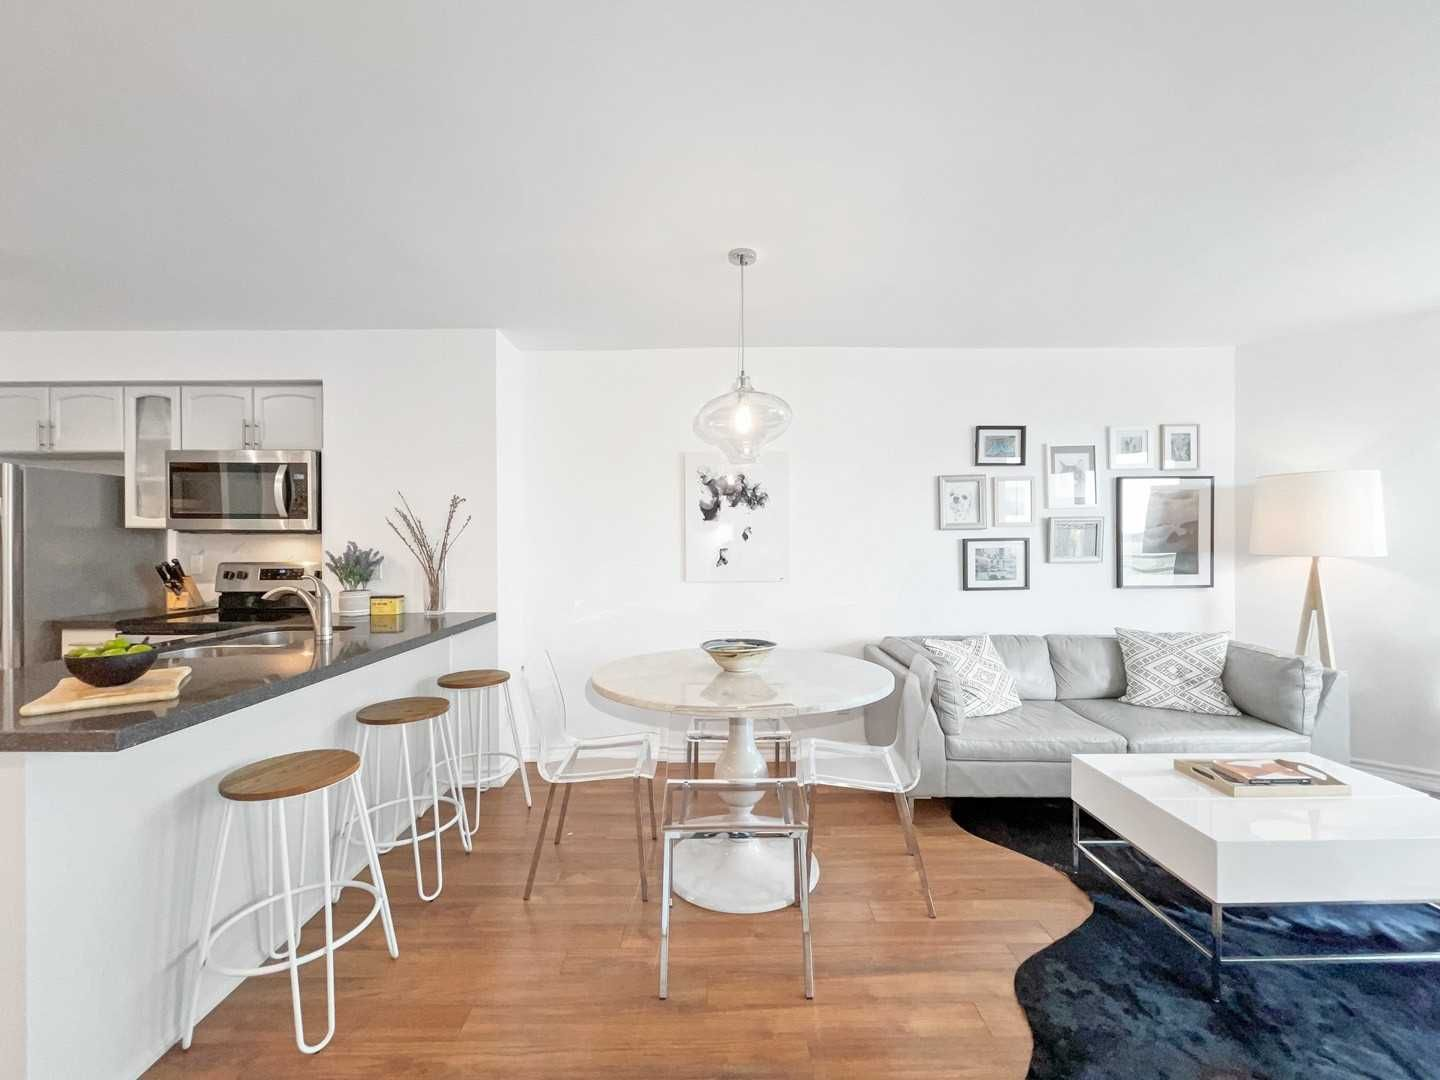 410 Queens Quay W, unit 510 for sale in Toronto - image #1